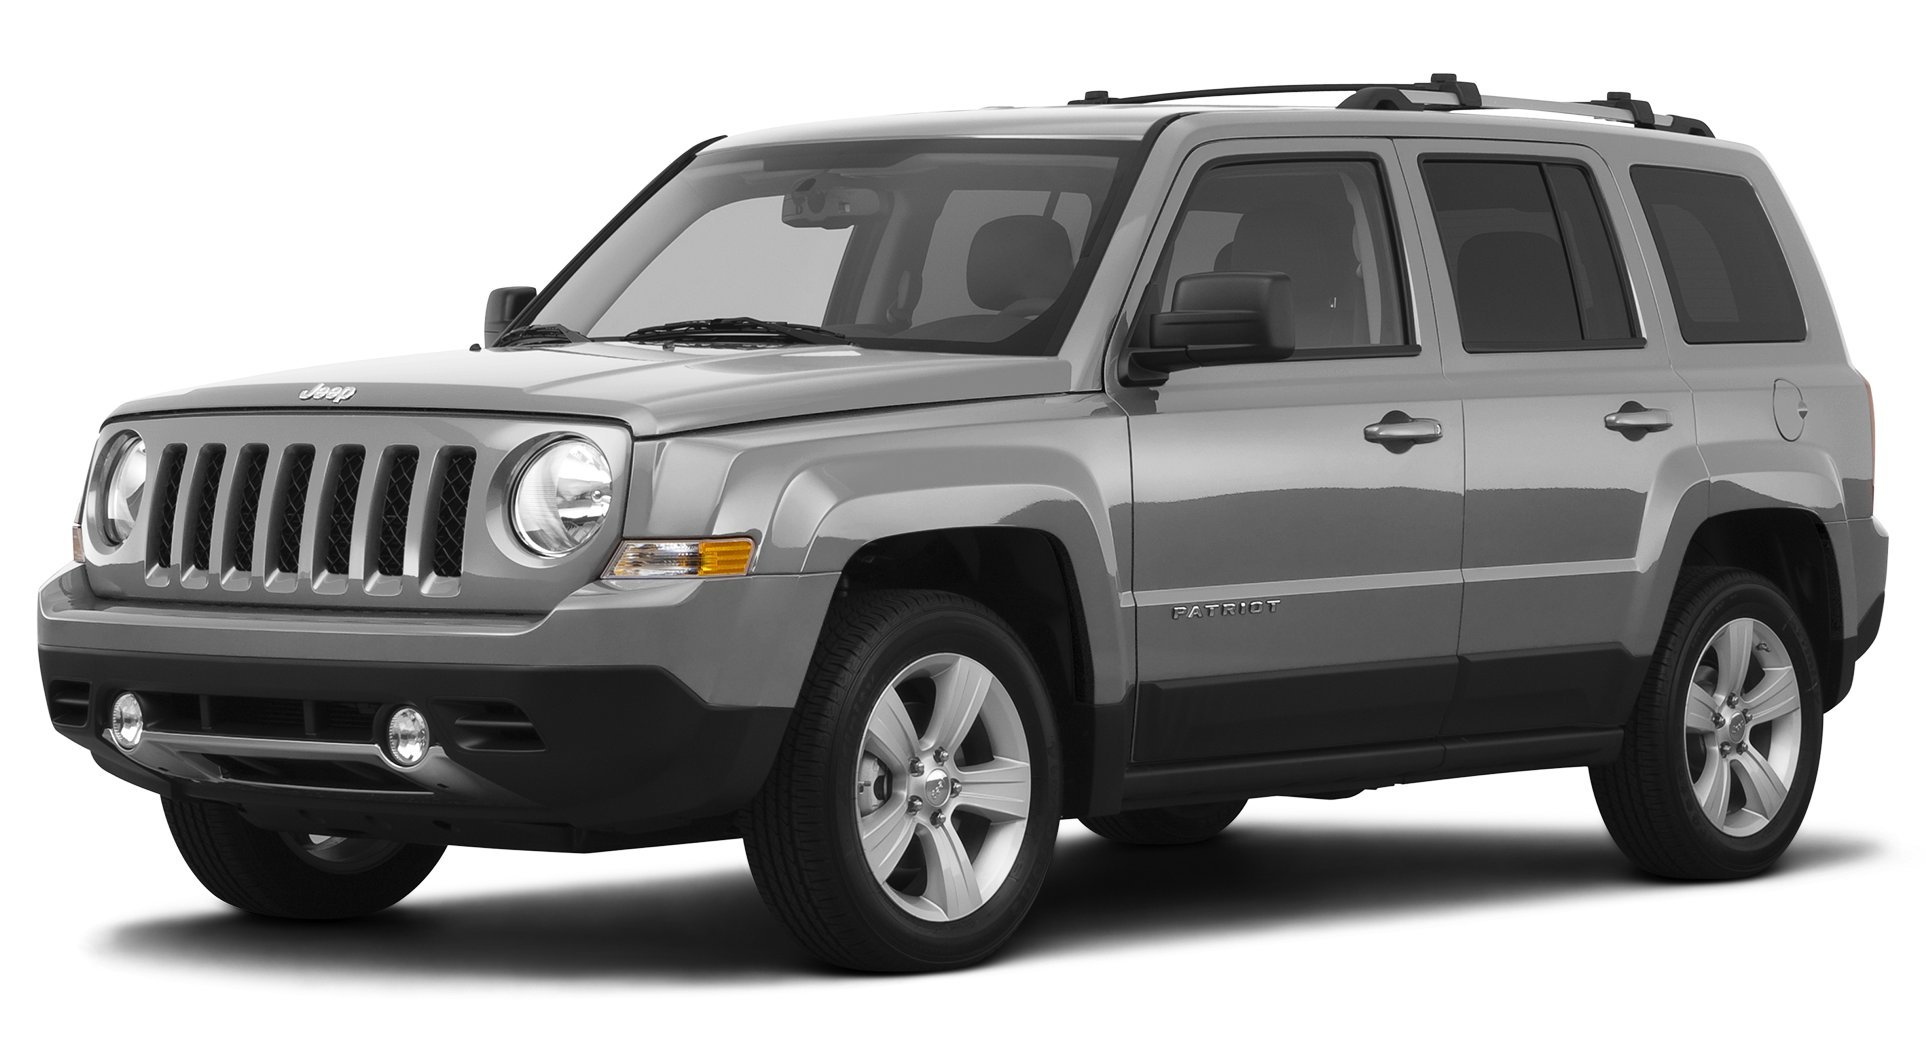 2017 jeep patriot recalls and problems - HD 1926×1060